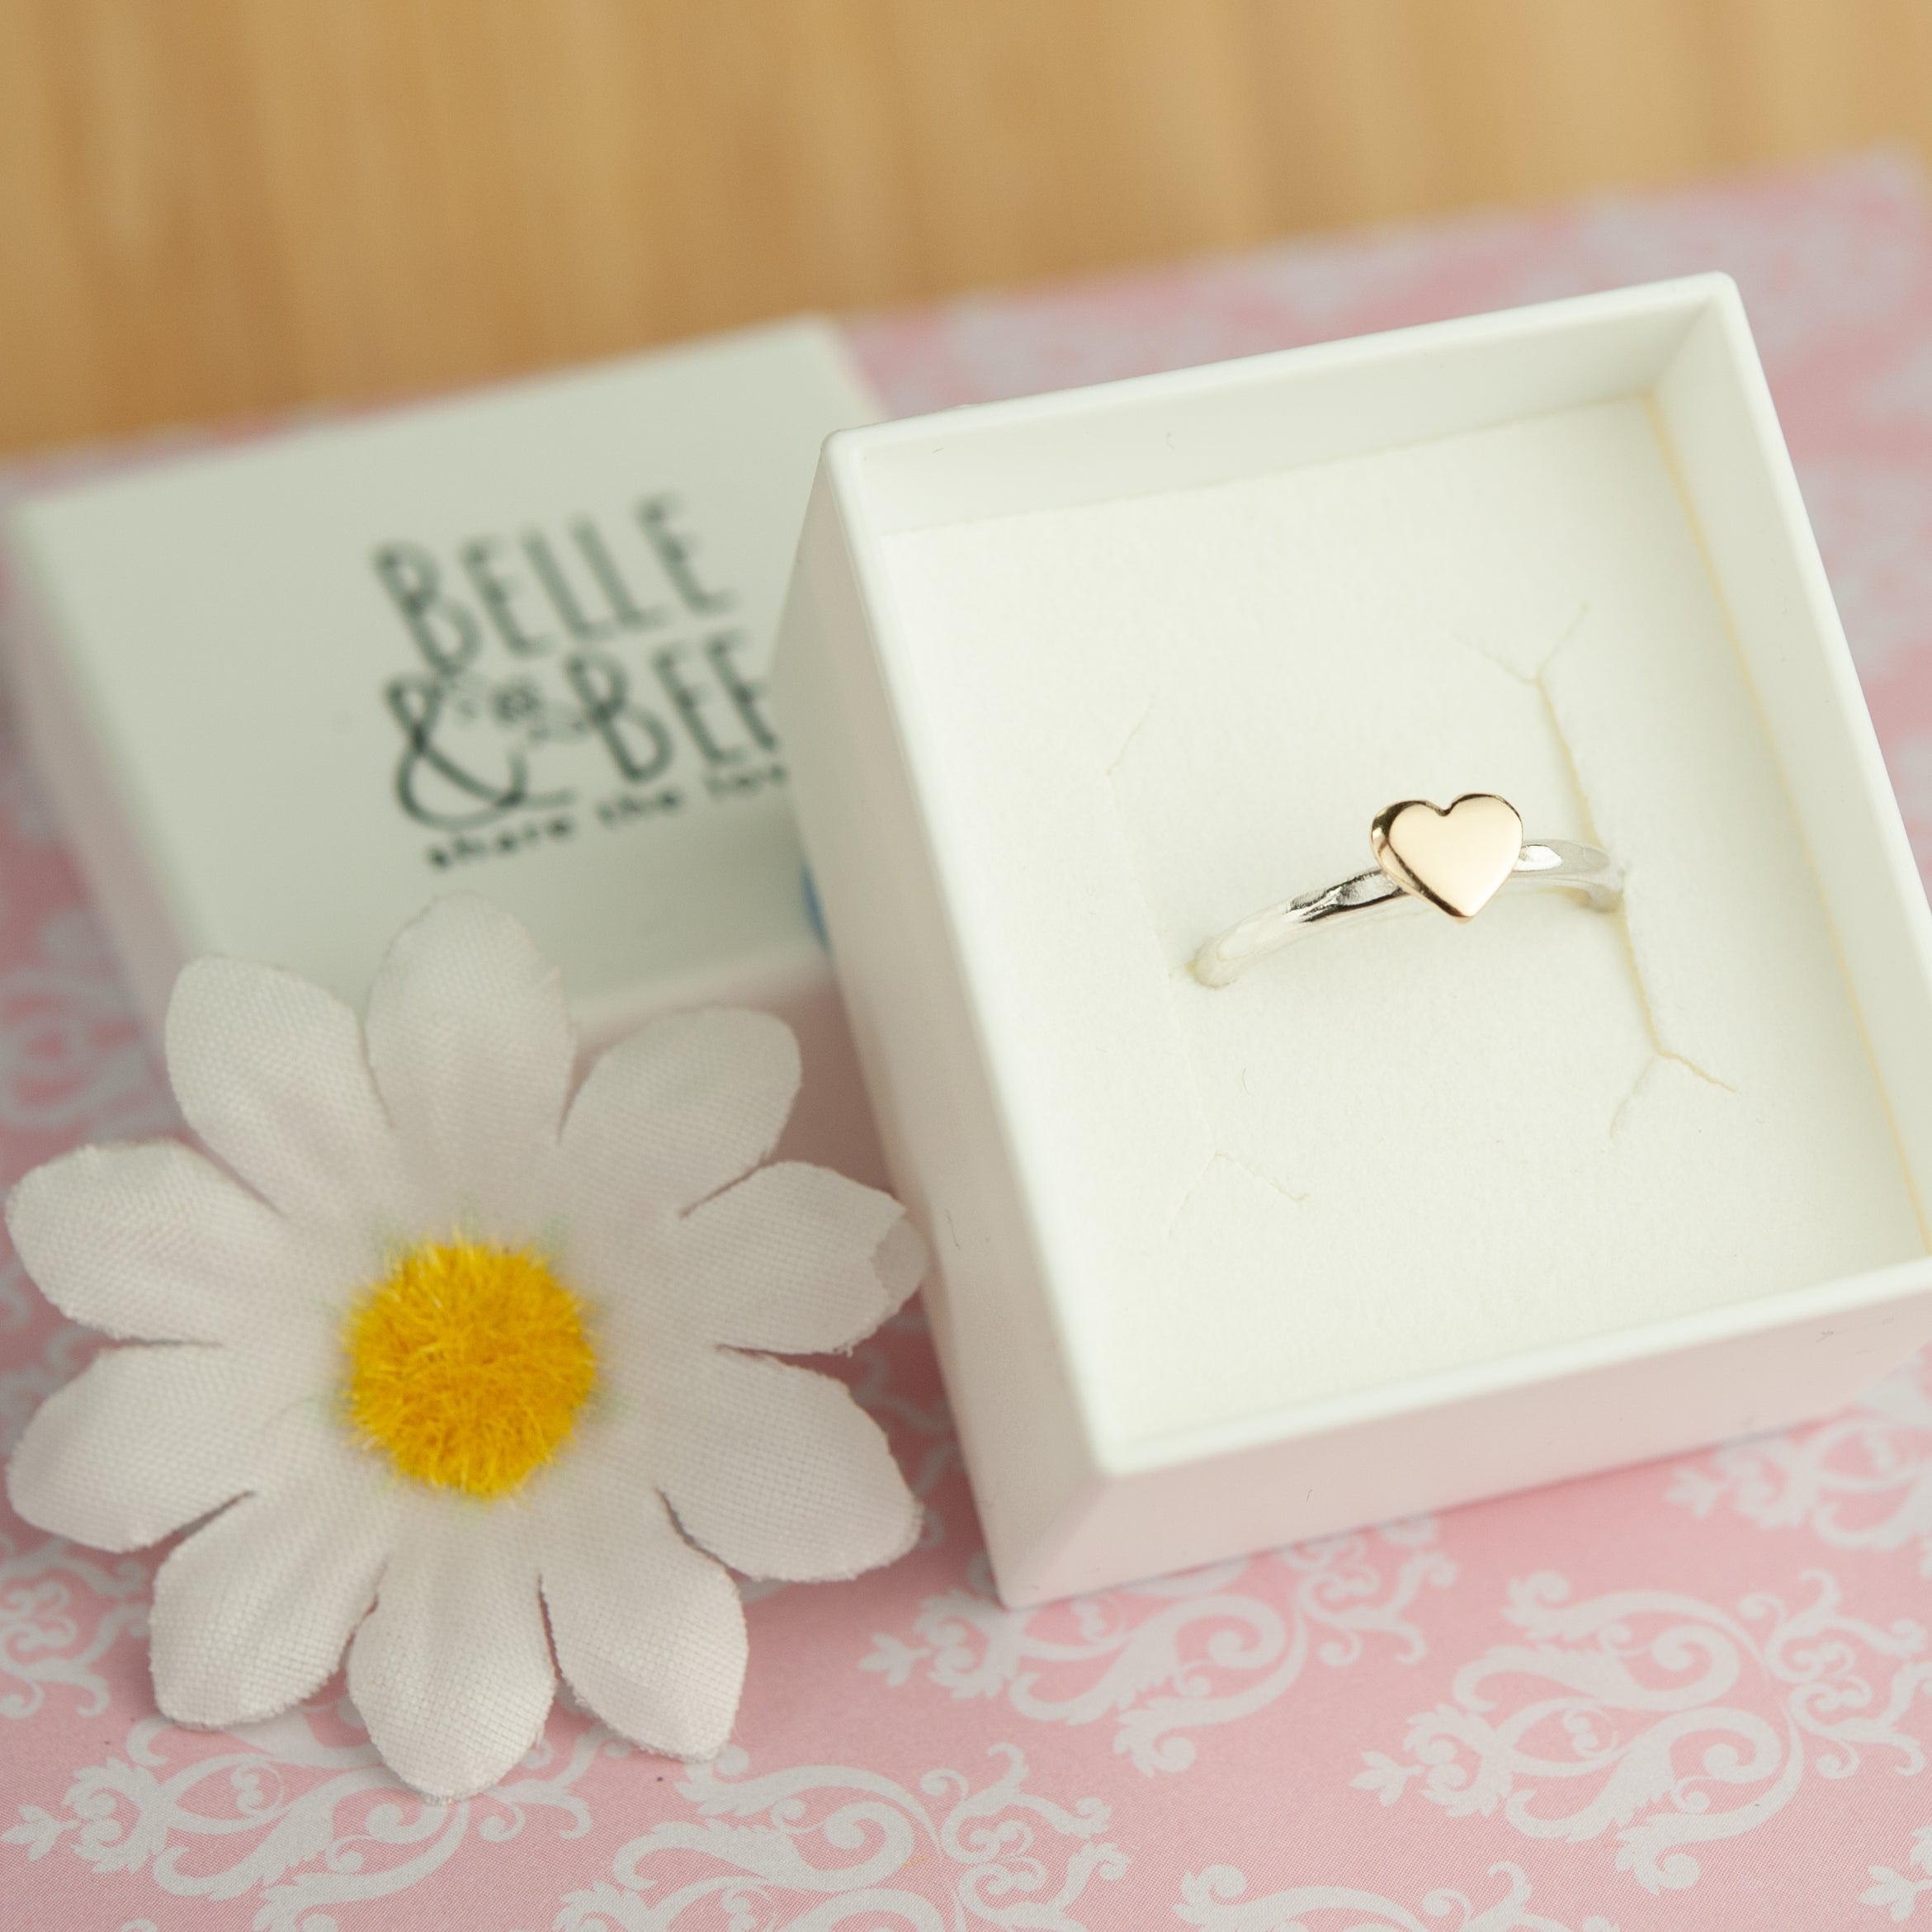 Belle & Bee Gold heart stack ring